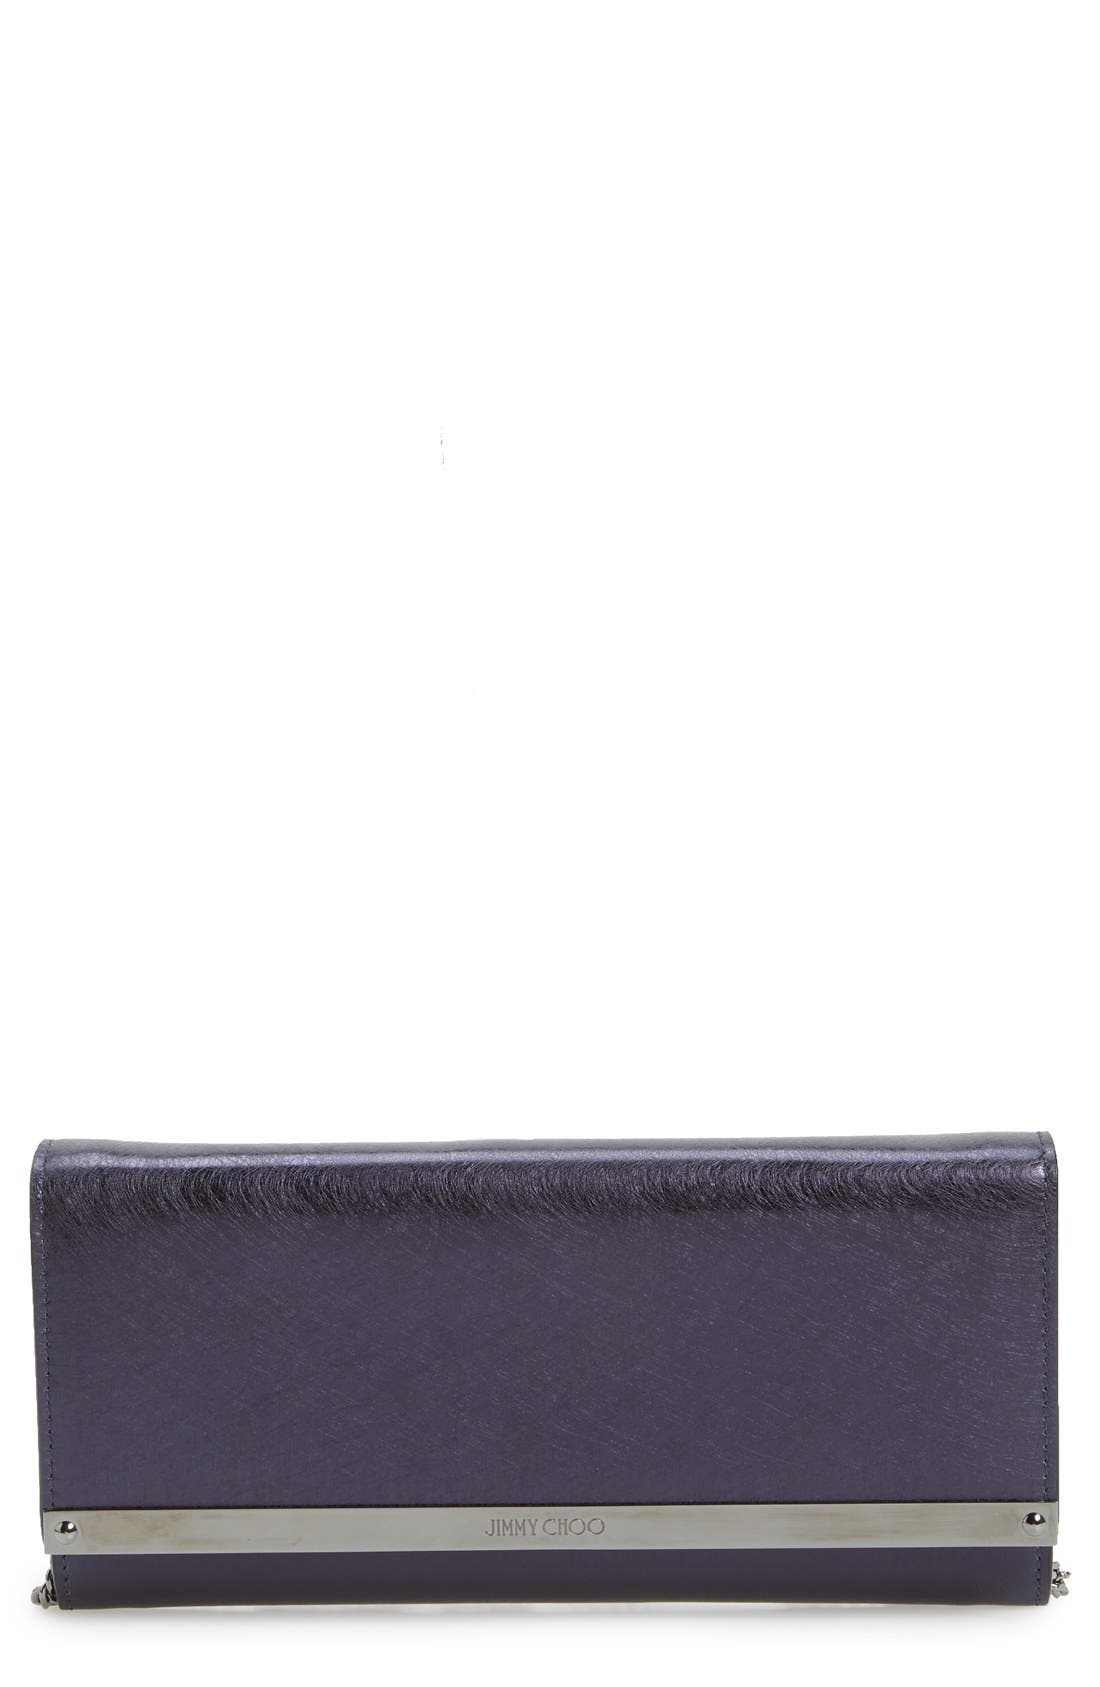 'Milla' Etched Metallic Spazzolato Leather Flap Clutch,                             Main thumbnail 1, color,                             410